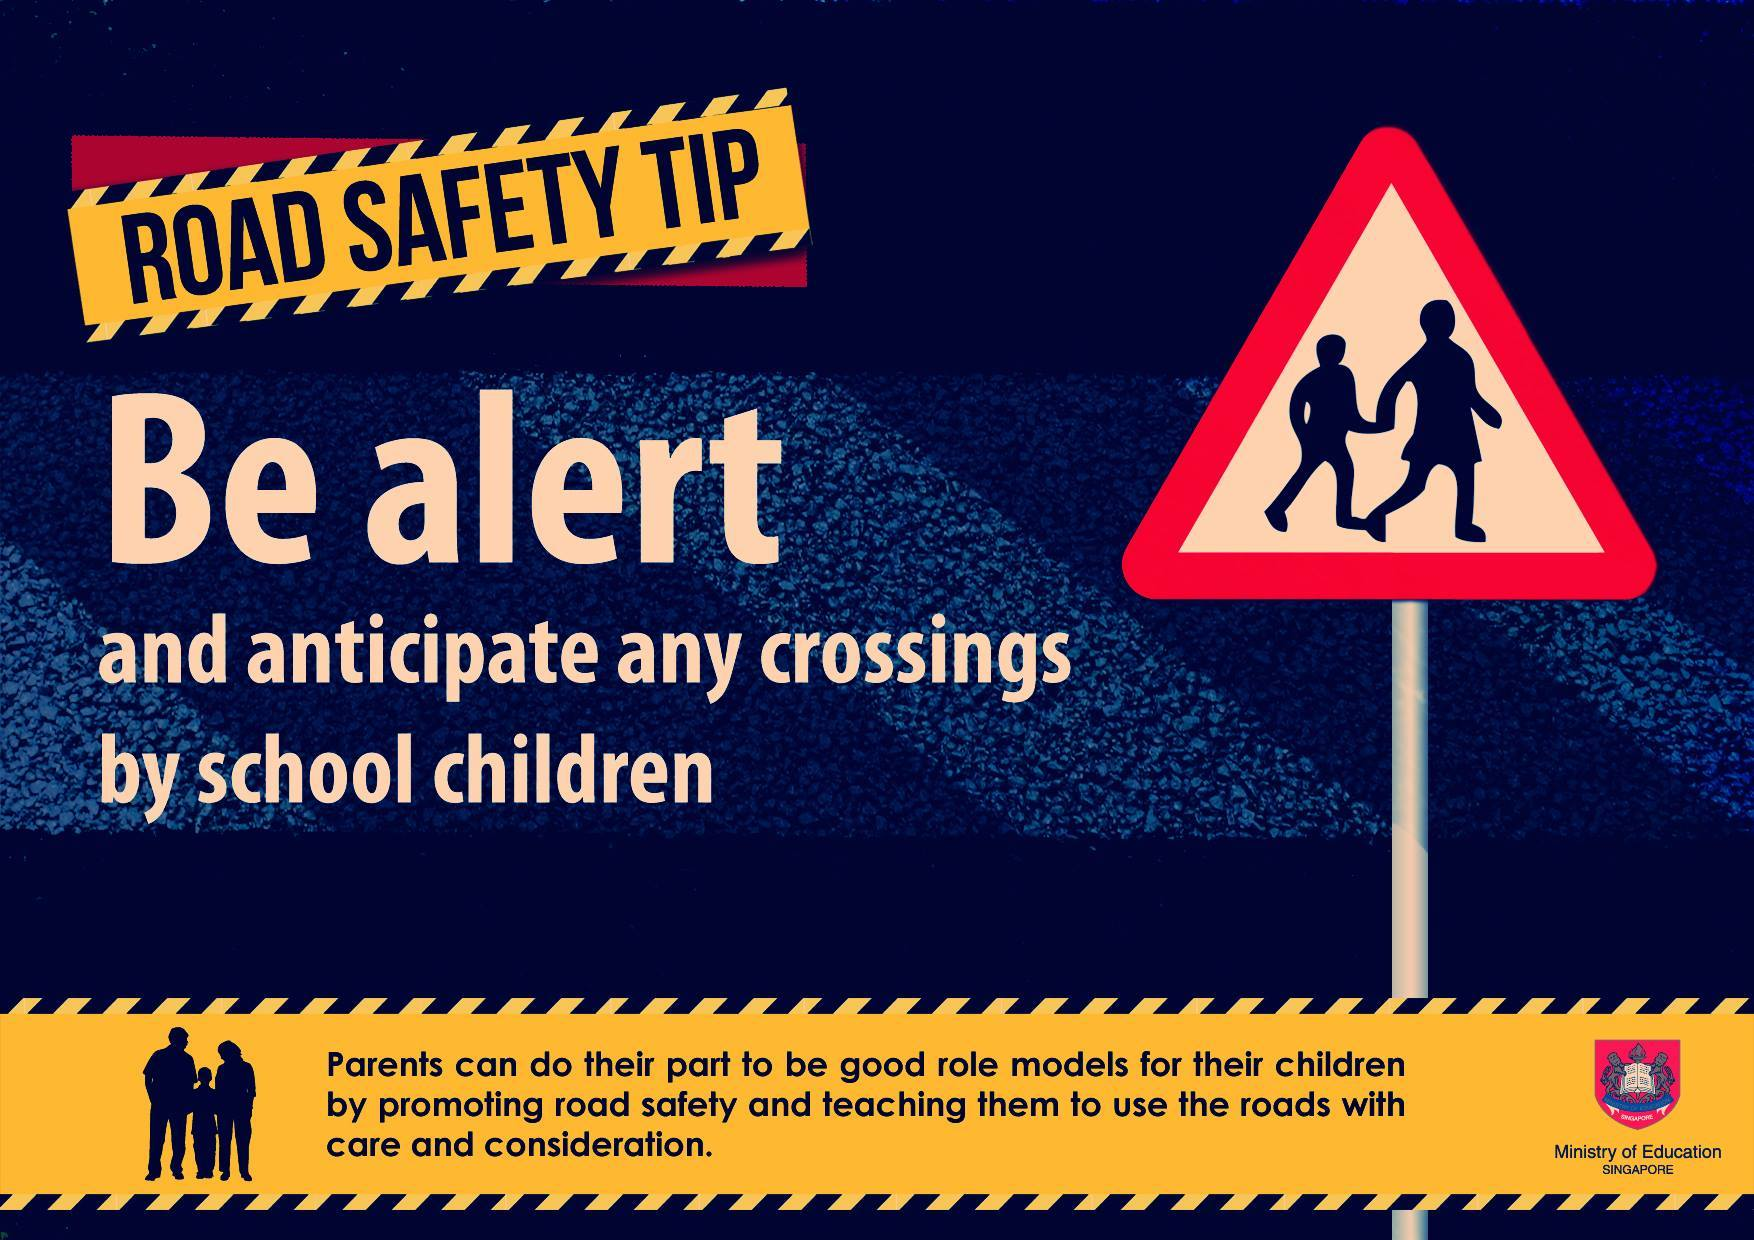 Be Alert and anticipate any crossings by school children